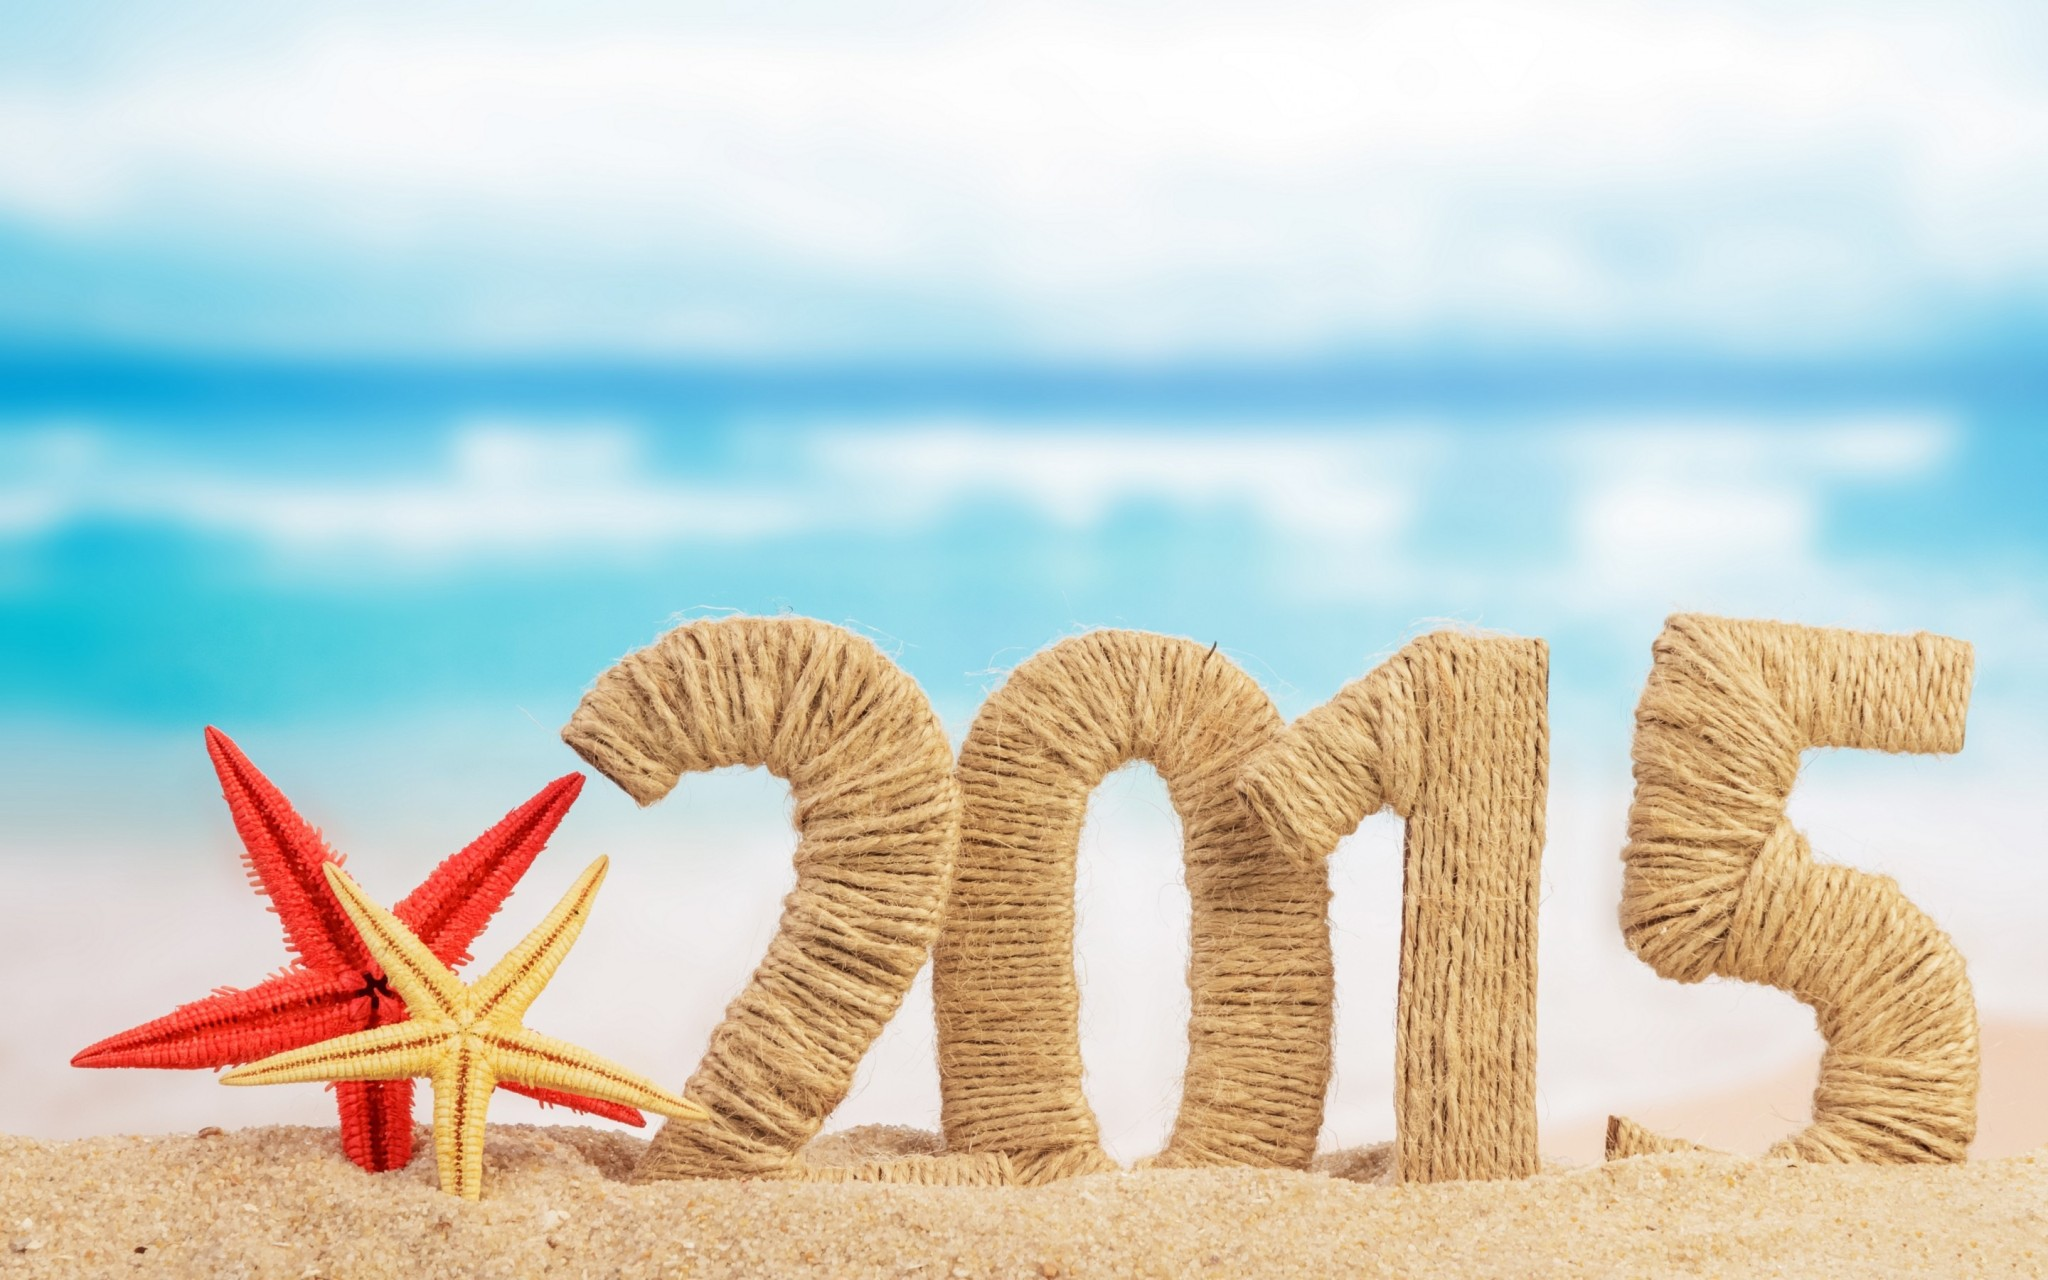 Happy New Years 2015 from University Pools - Pool Service & Repair